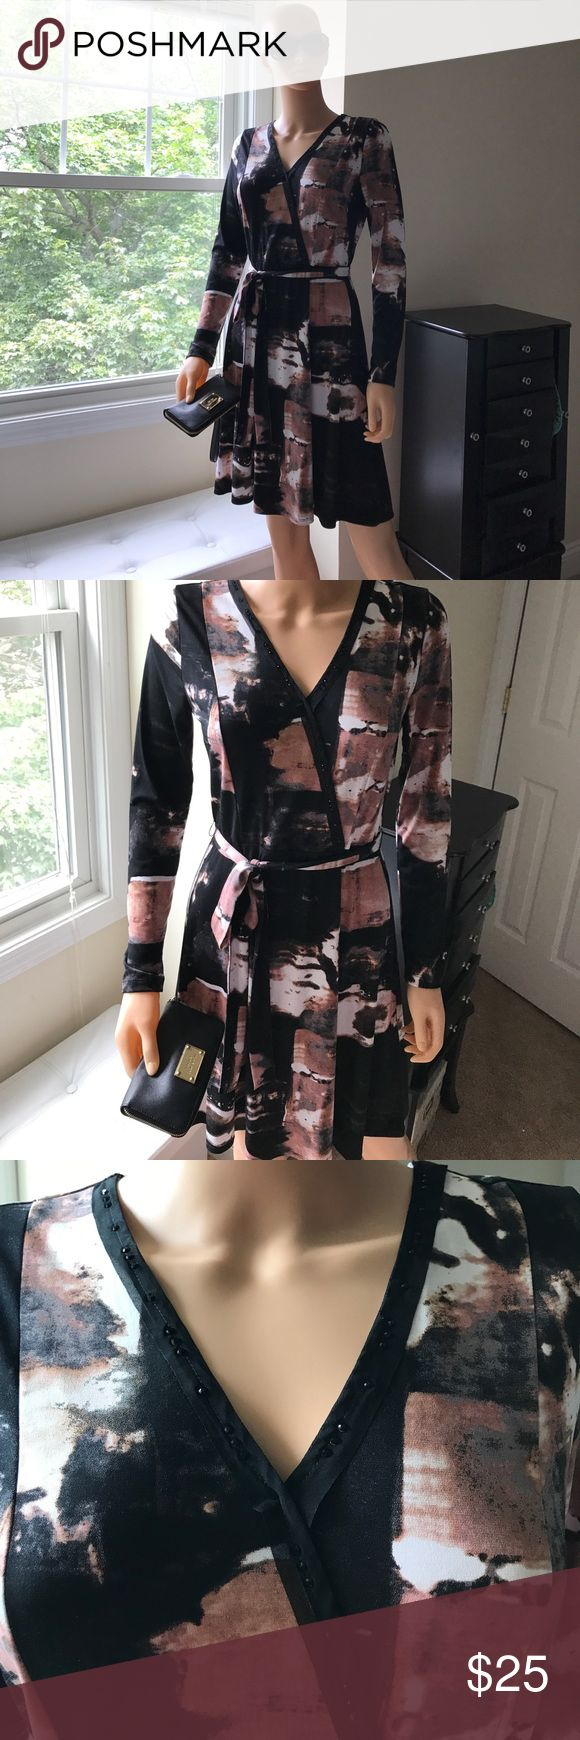 Simply Vera Wang Printed Dress 👗 Never worn, is incredibly flattering and intricately detailed. Too small for me 😢 Simply Vera Vera Wang Dresses Midi